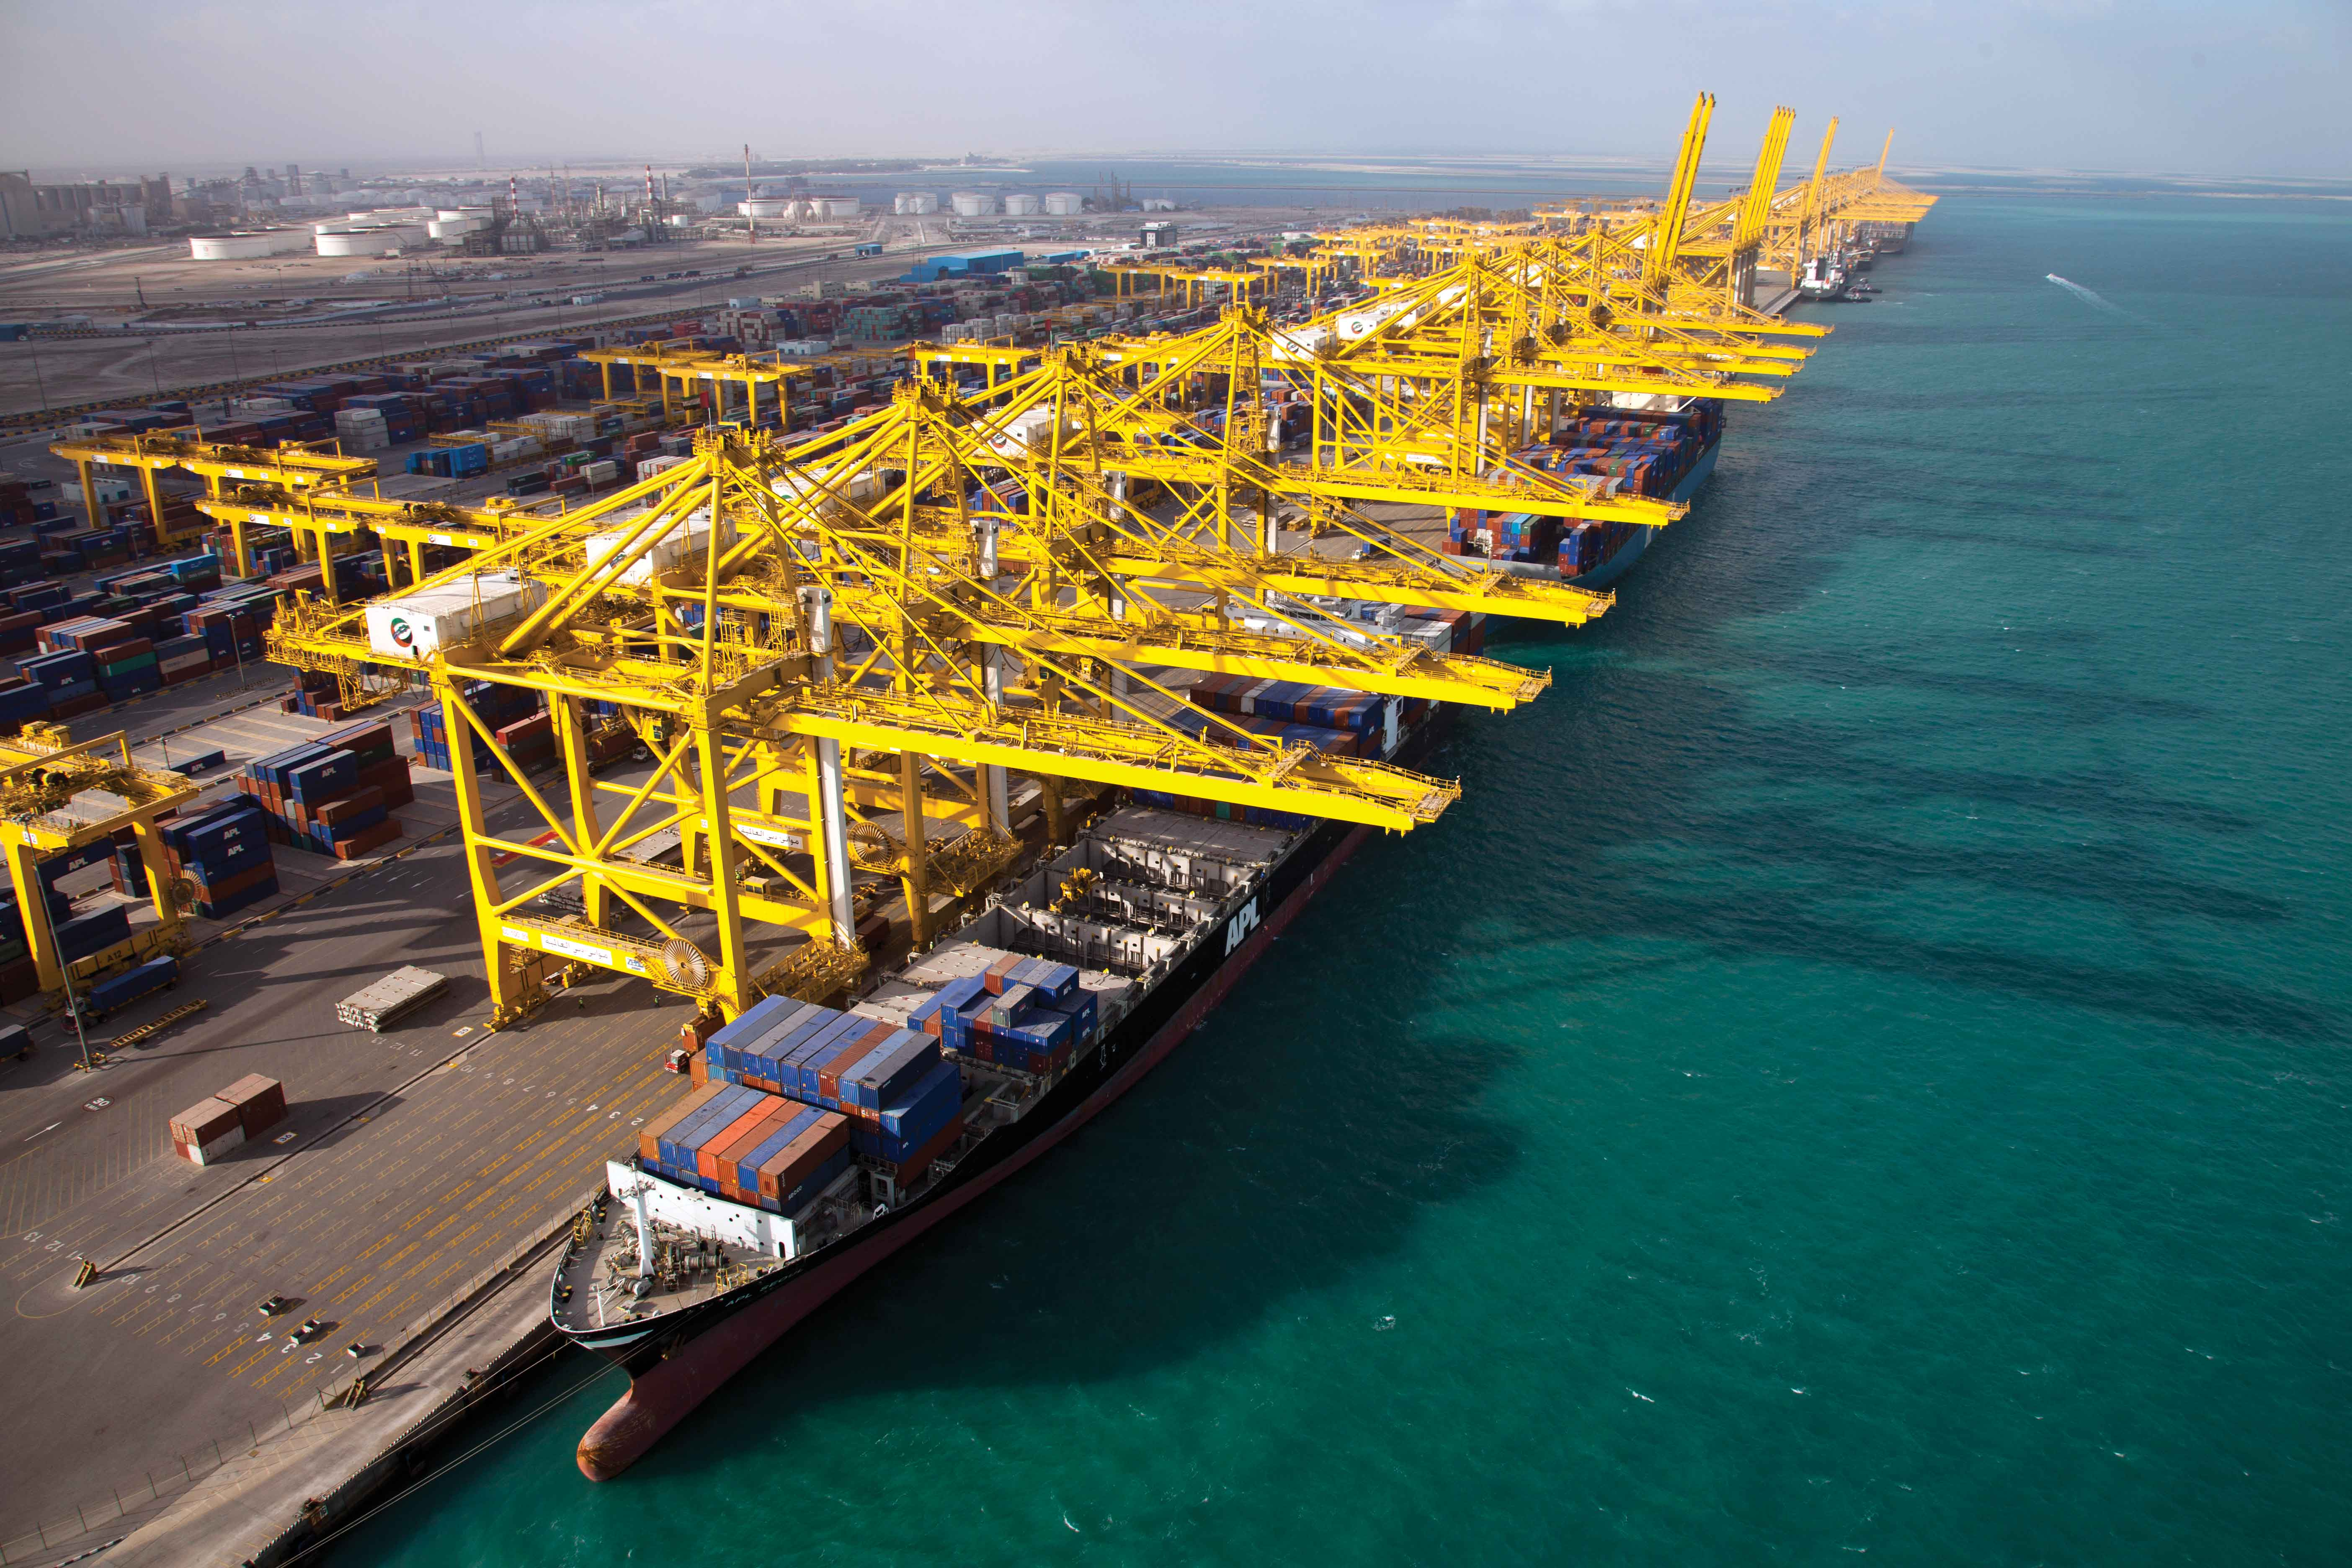 Expansion and investments are expected to drive the UAE